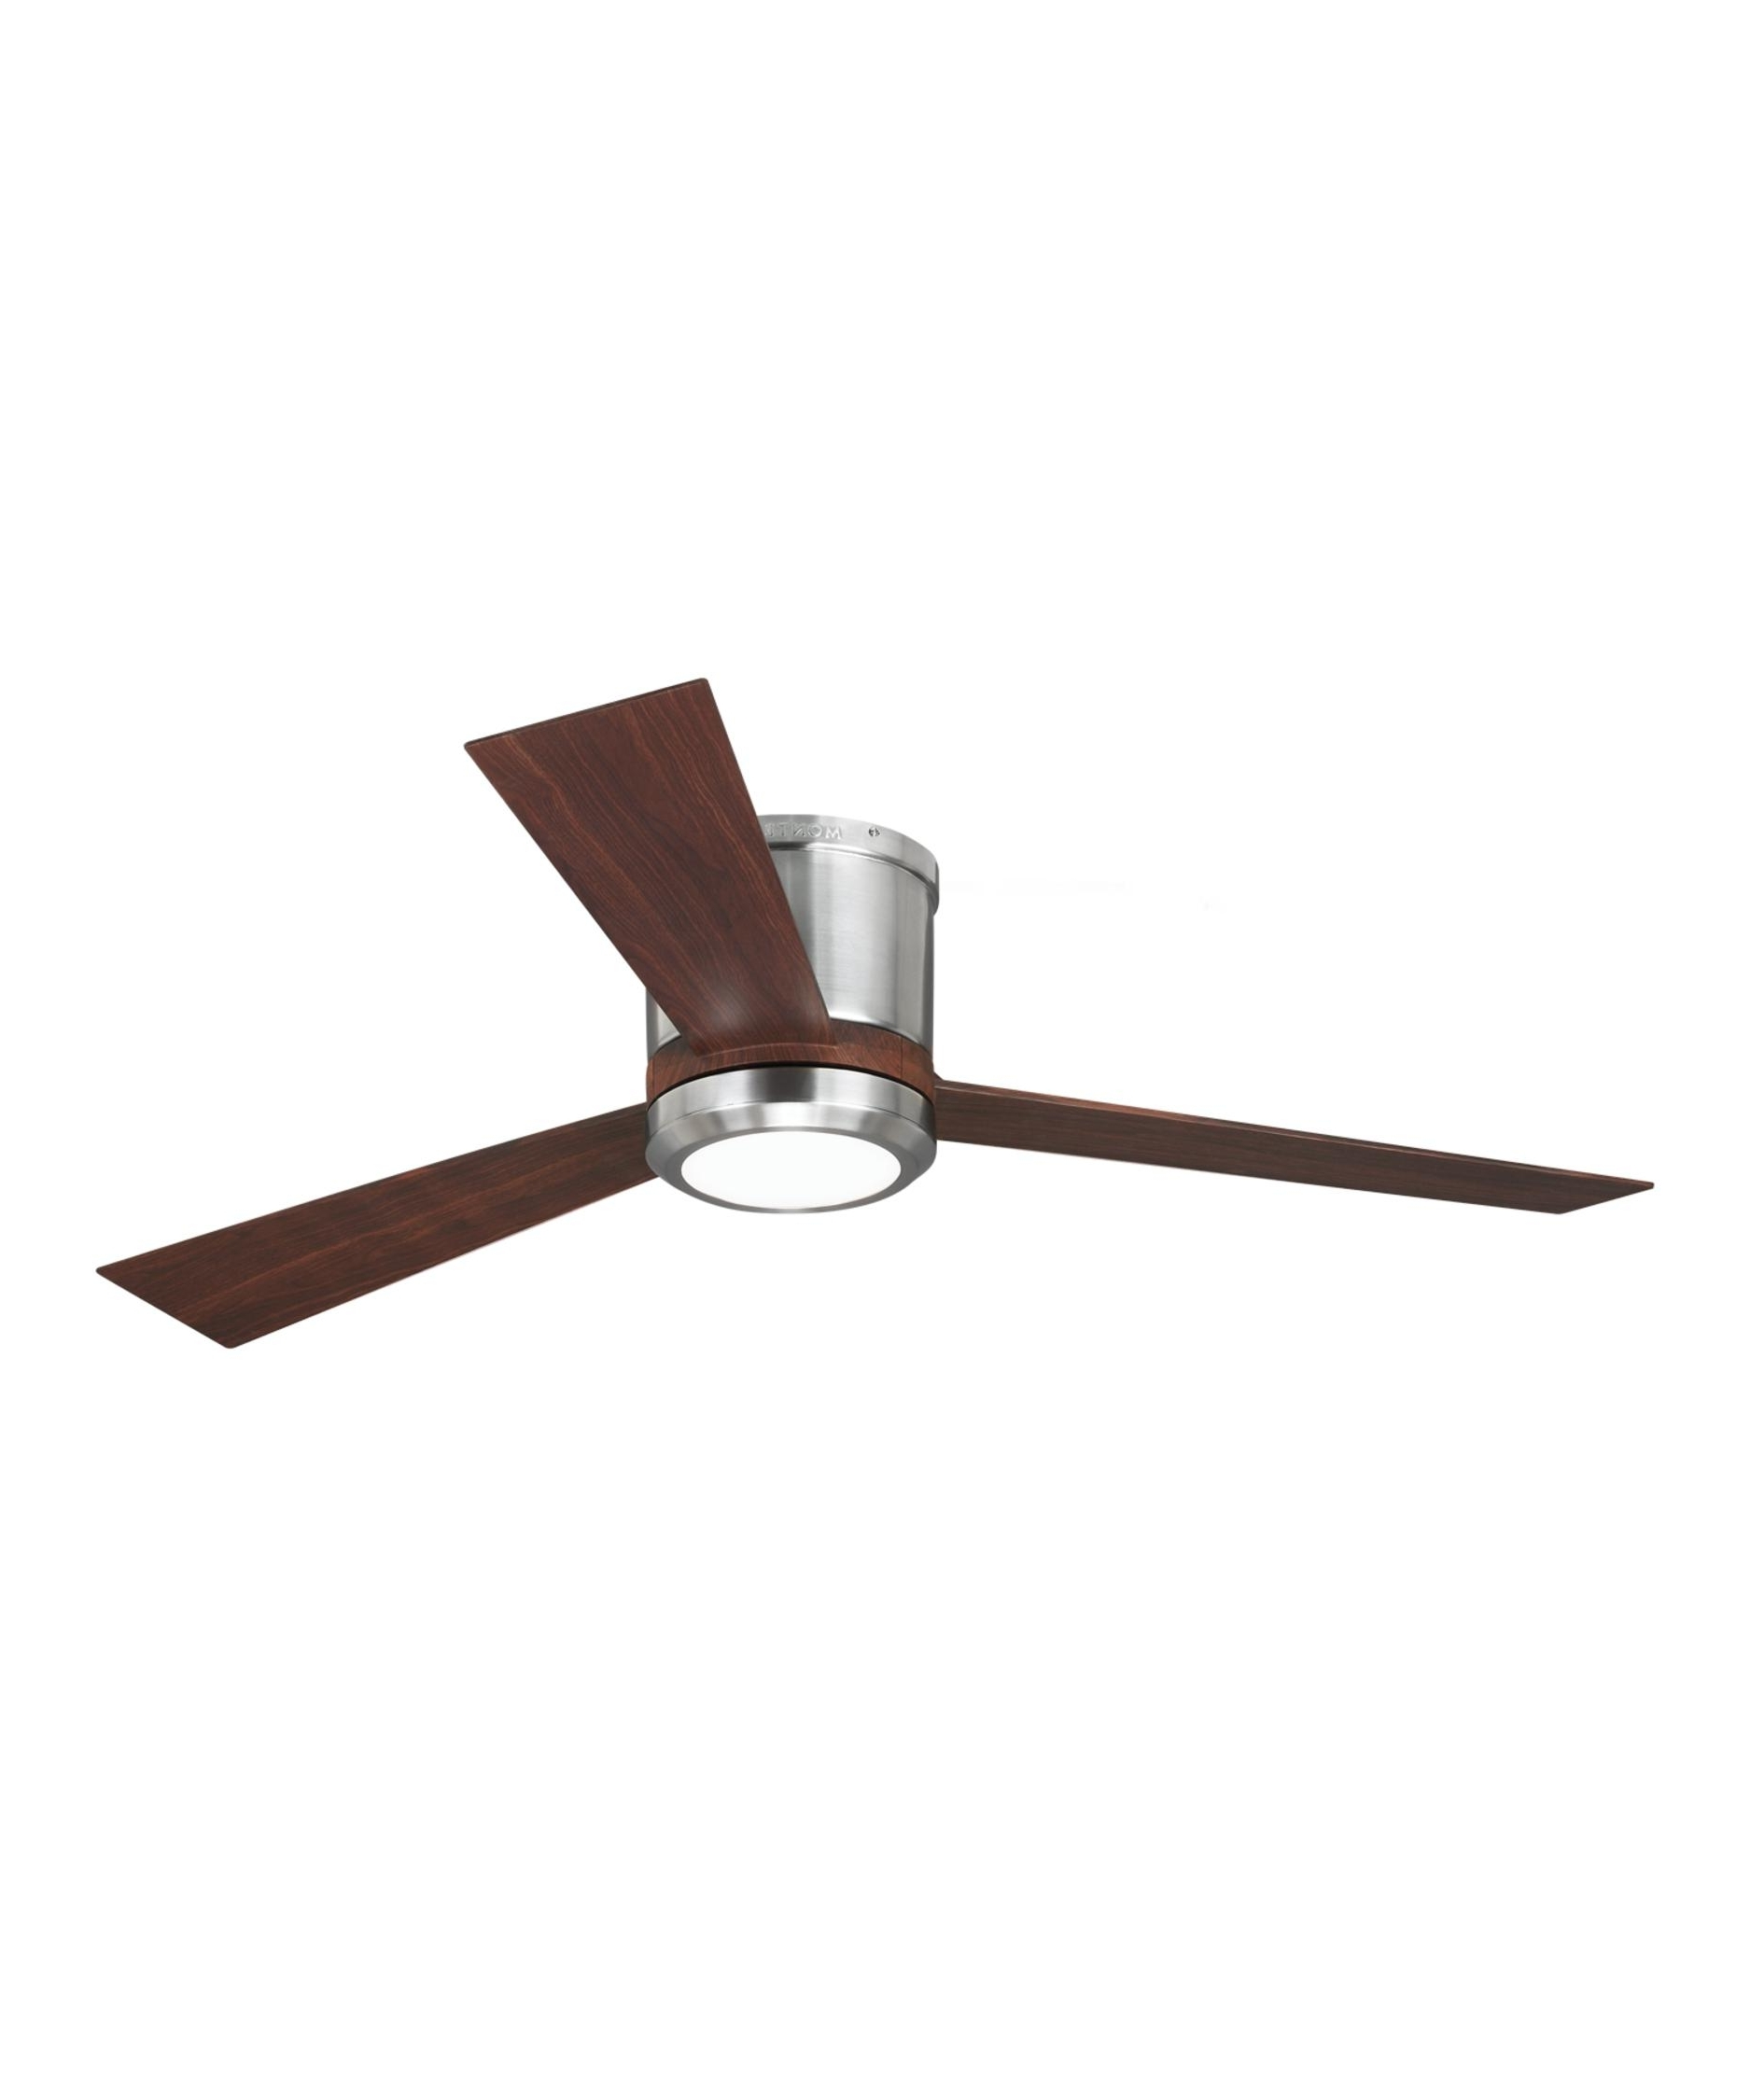 Image Gallery Of 36 Inch Outdoor Ceiling Fans With Light Flush Mount View 4 Of 20 Photos